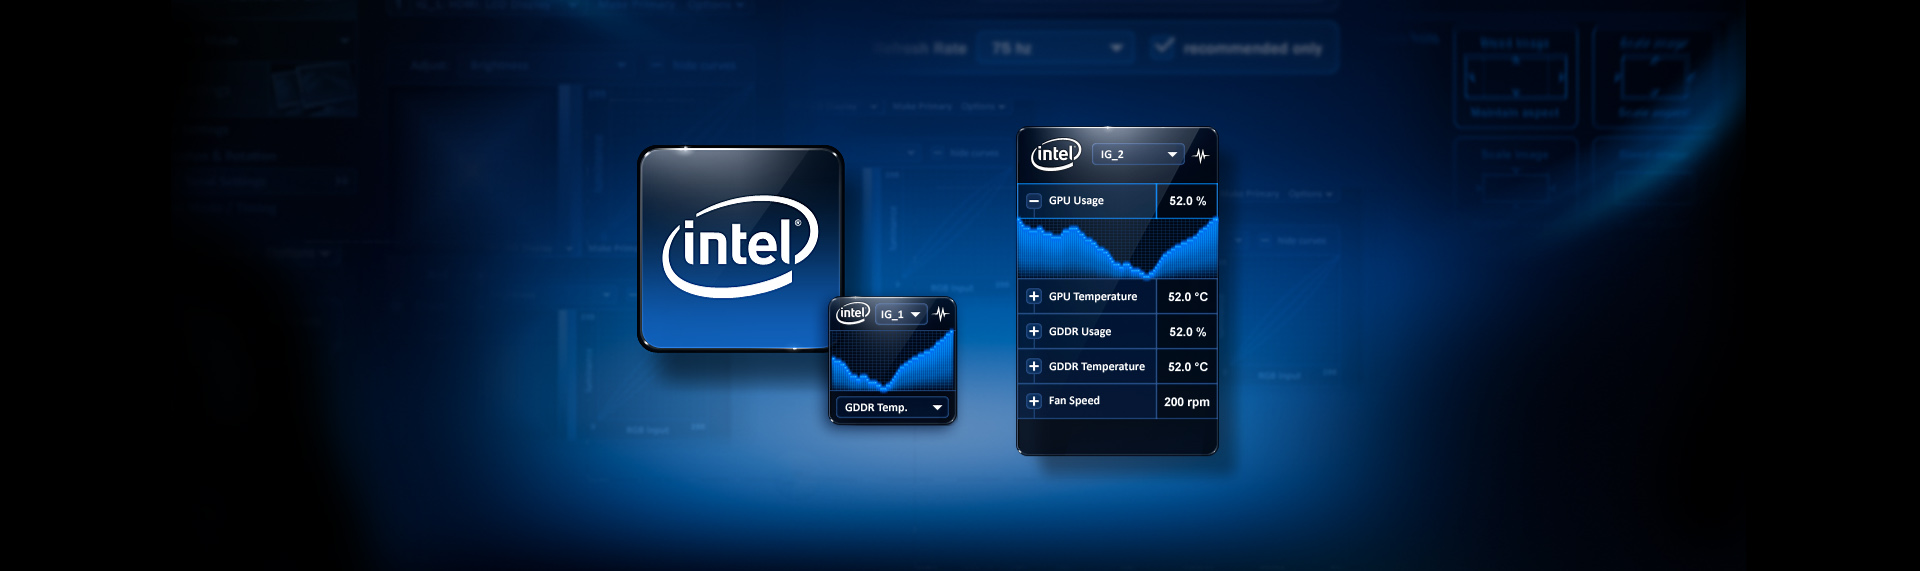 Intel Graphics Control Panel Gadget  Client: Intel Corporation  A custom Windows gadget created in tandem with the jointly developed application - the Intel Graphics & Media Control Panel application. Over the following 17 months, TSF orchestrated development with Intels Engineering & Branding arms to reinvent the graphics control panel. In addition to crafting a beautiful fluidly animated appearance, we created this dynamic Windows Sidebar Gadget that shares perfect visual symmetry with the Graphics Control Panel.